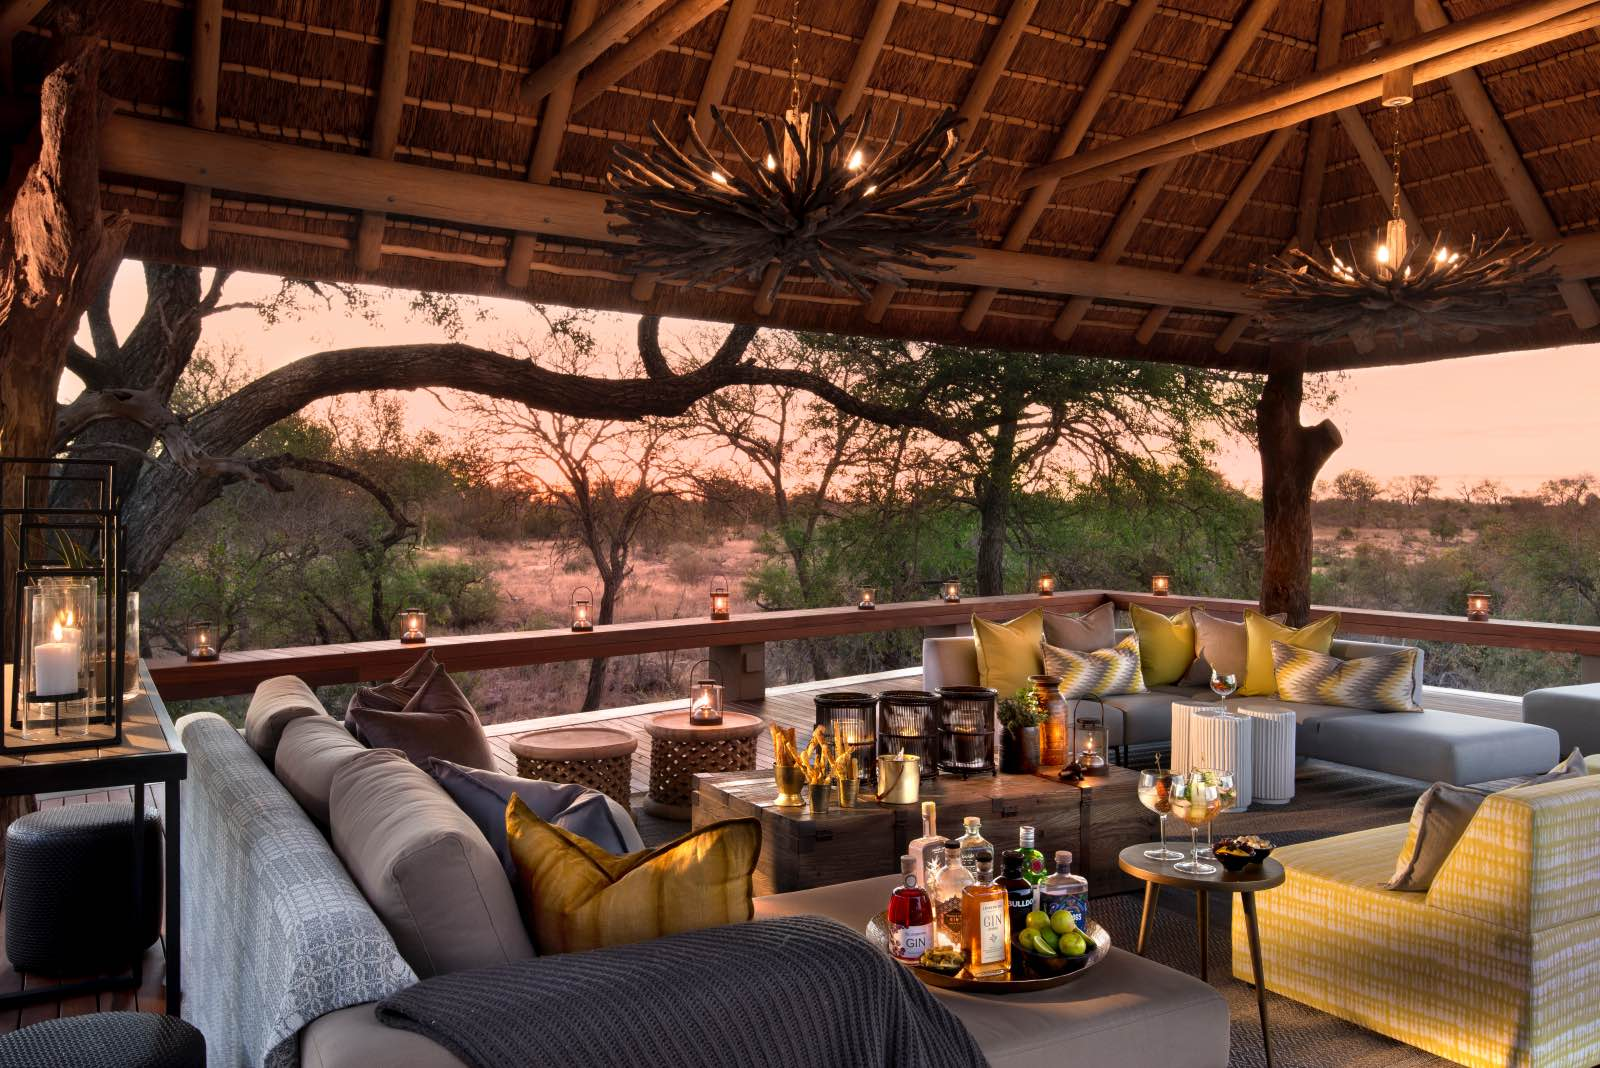 Lounge under thatch on a wooden deck with a view onto the surrounding bush